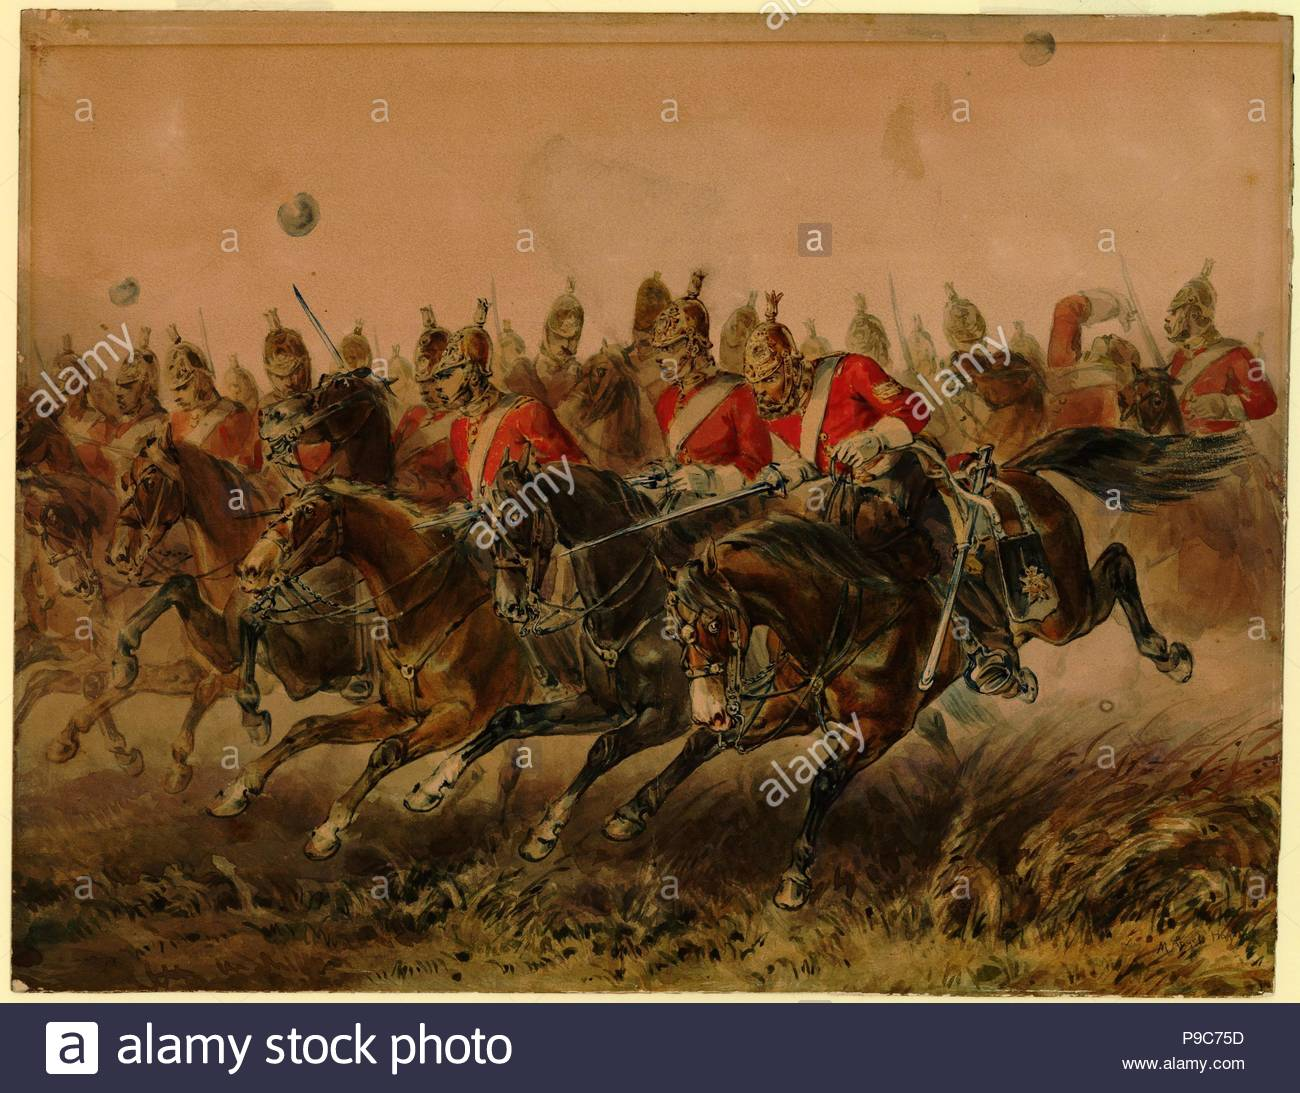 The Charge of the Light Brigade during the Battle of Balaclava. Museum: PRIVATE COLLECTION. - Stock Image